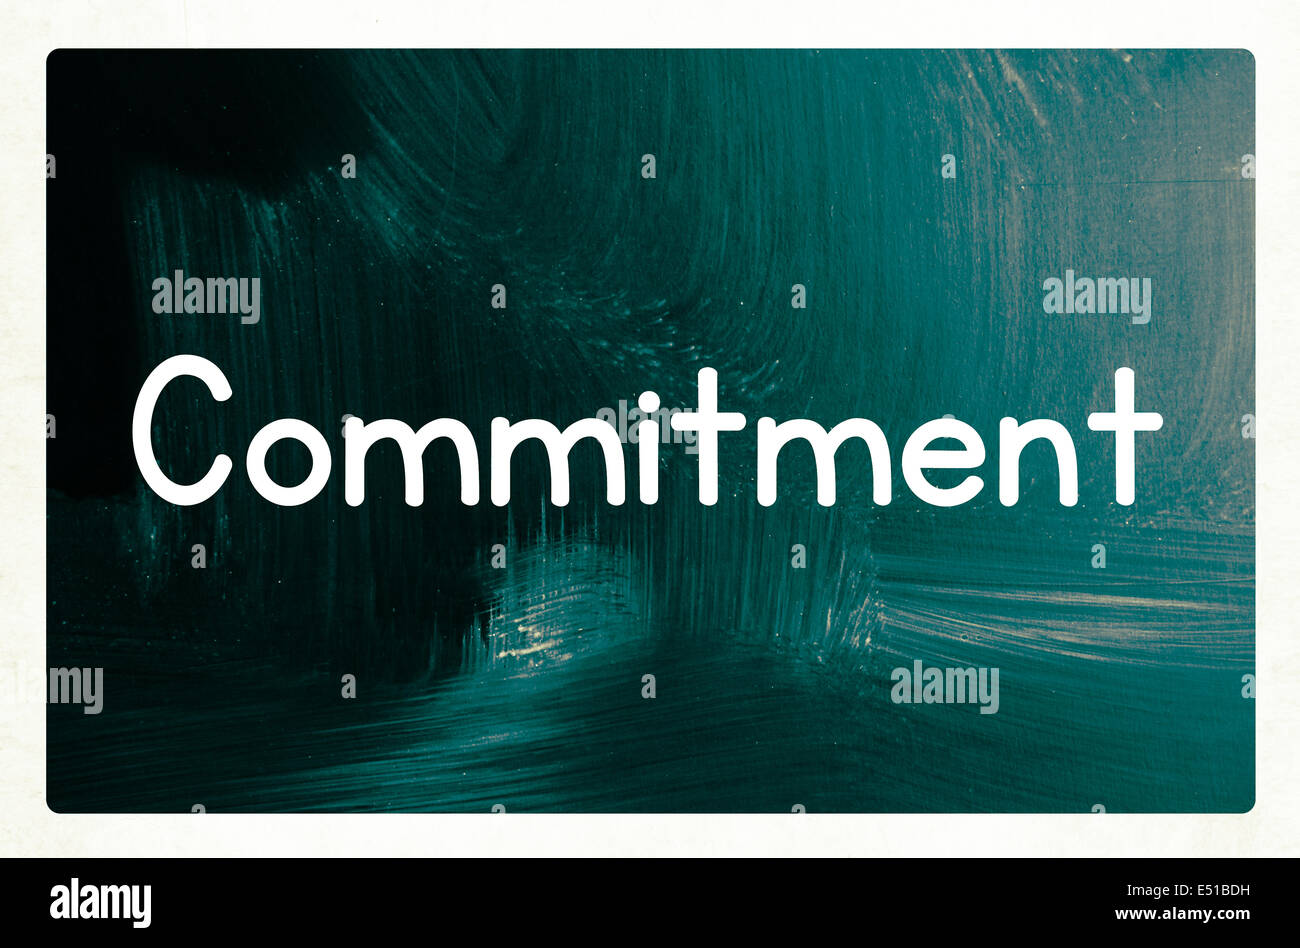 commitment concept - Stock Image